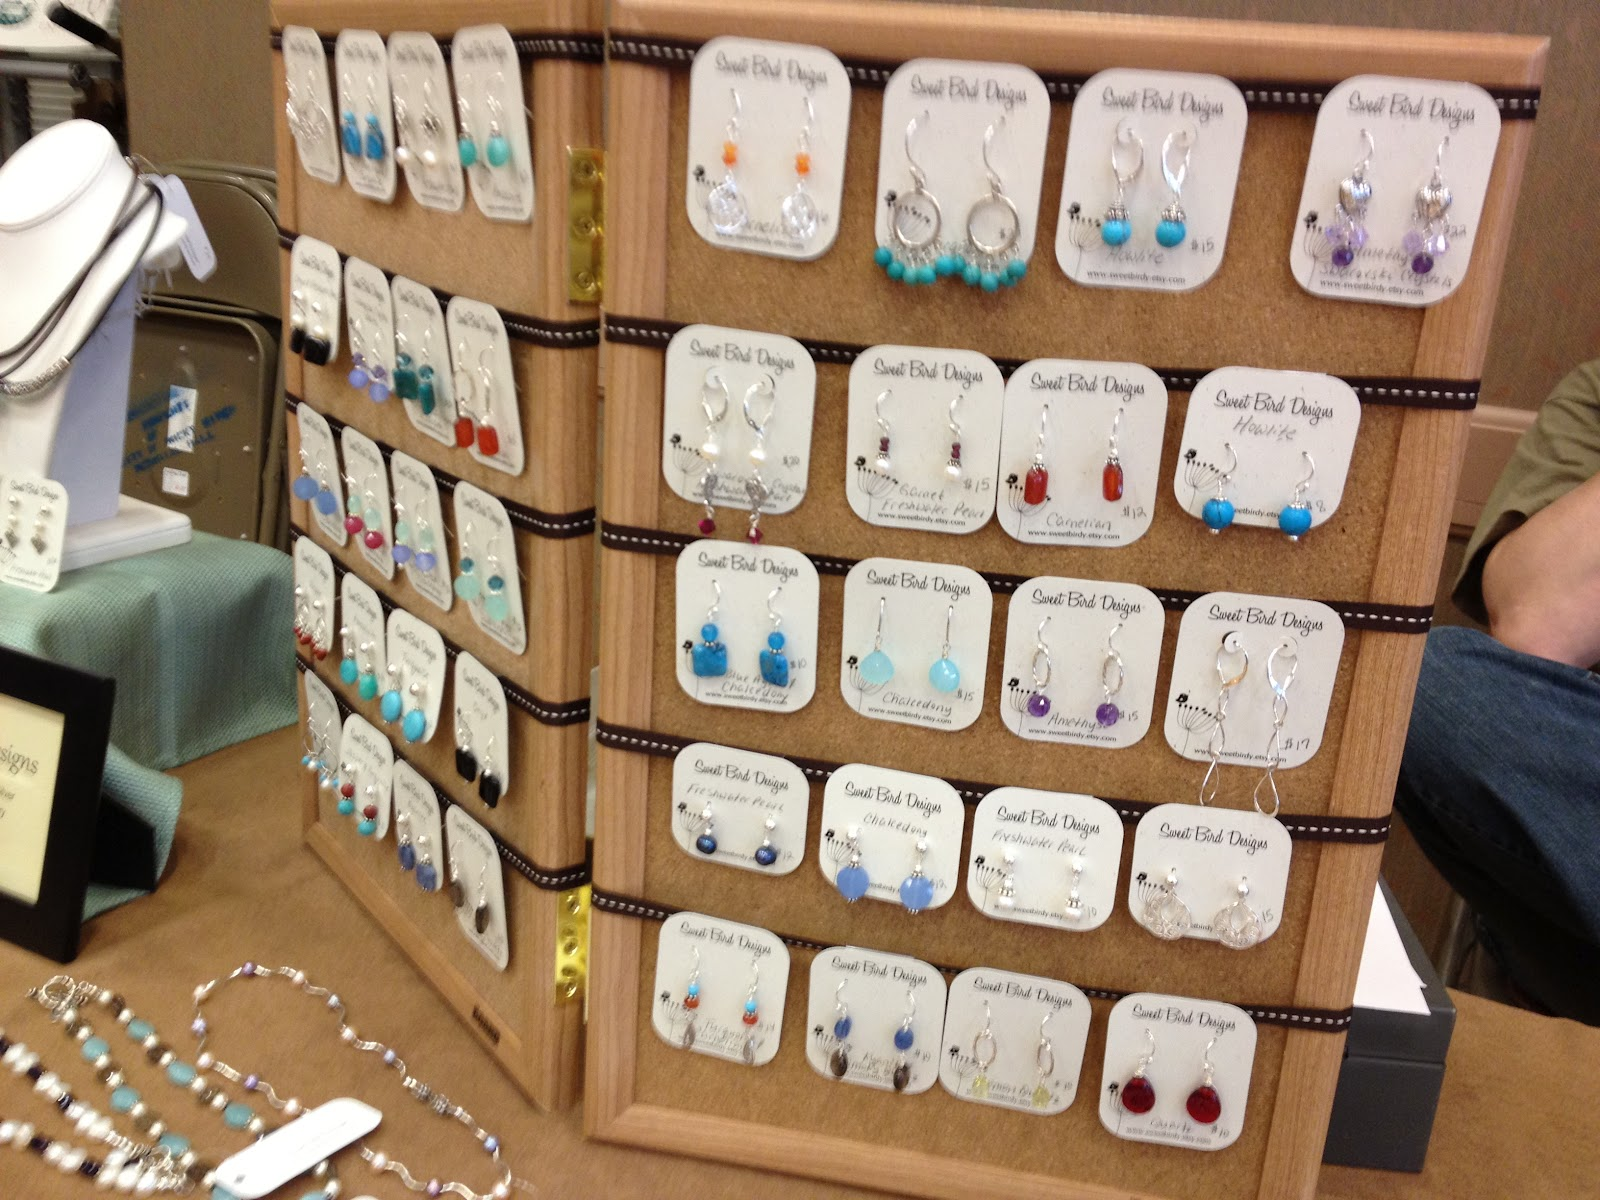 You Ll Find A Variety Of Business Cards Tags Jewelry And Stickers In Many Pretty Designs Cardstock Options My Experience With These Las